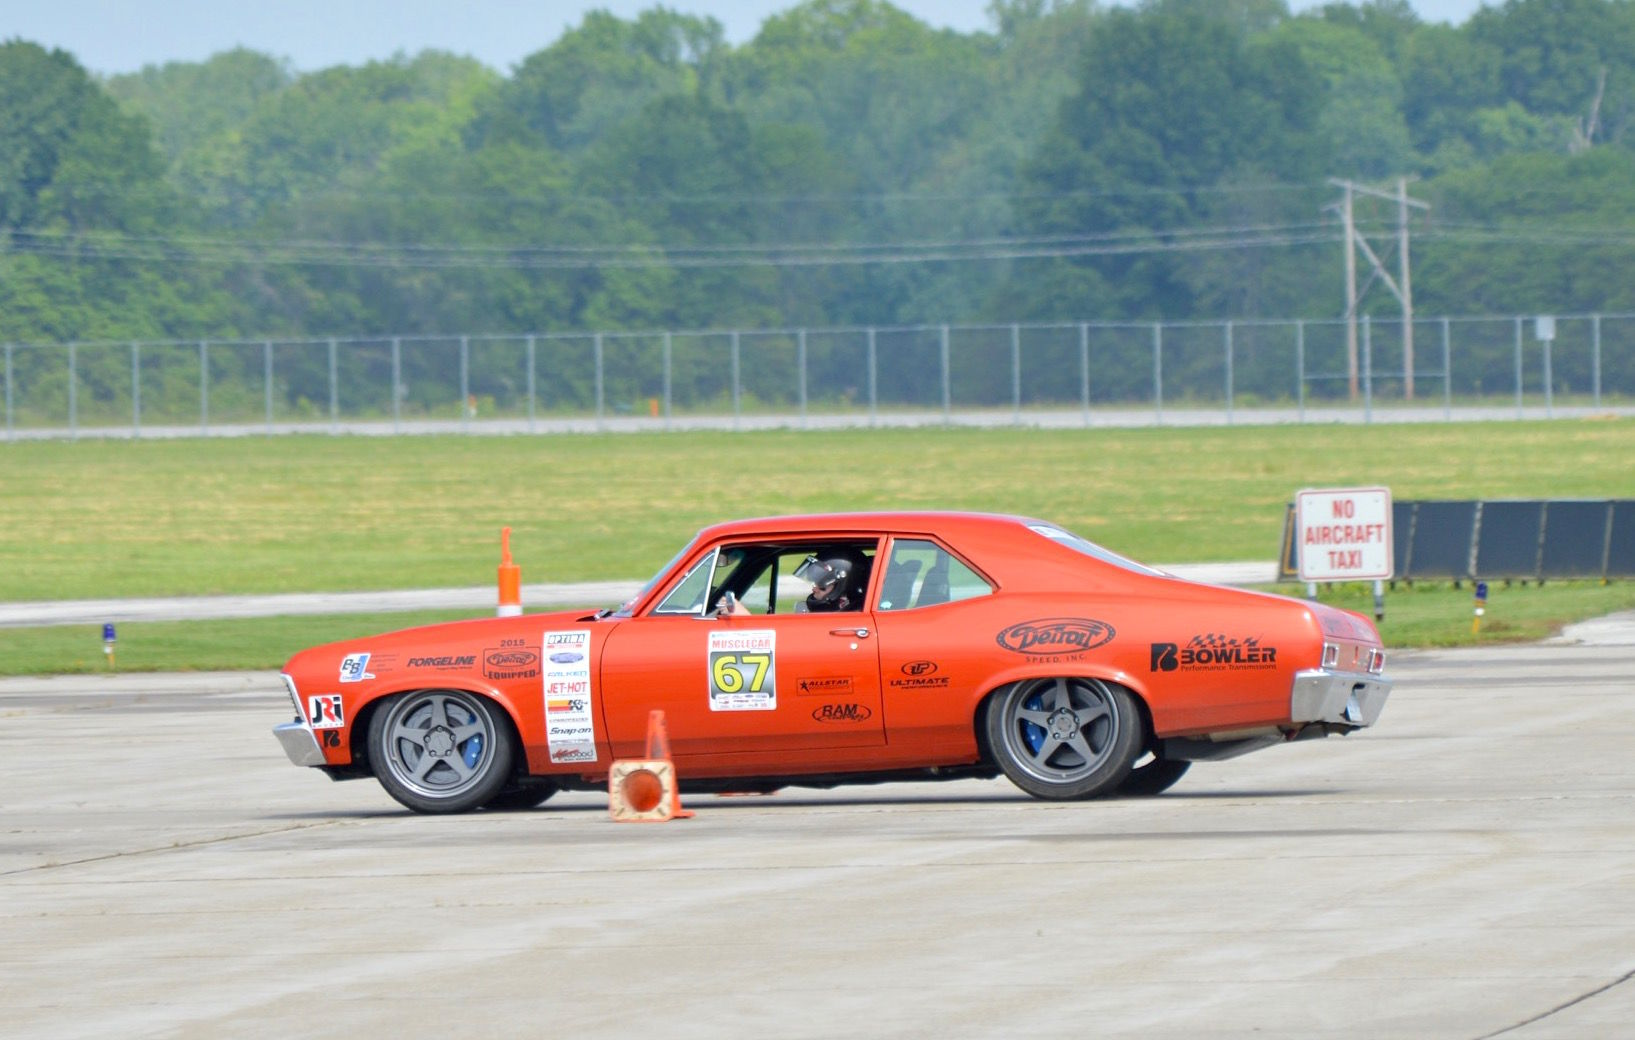 1972 Chevrolet Nova   Billy Utley's '72 Nova on Forgeline Heritage Series FF3 Wheels at the 2016 Midwest MuscleCar Challenge